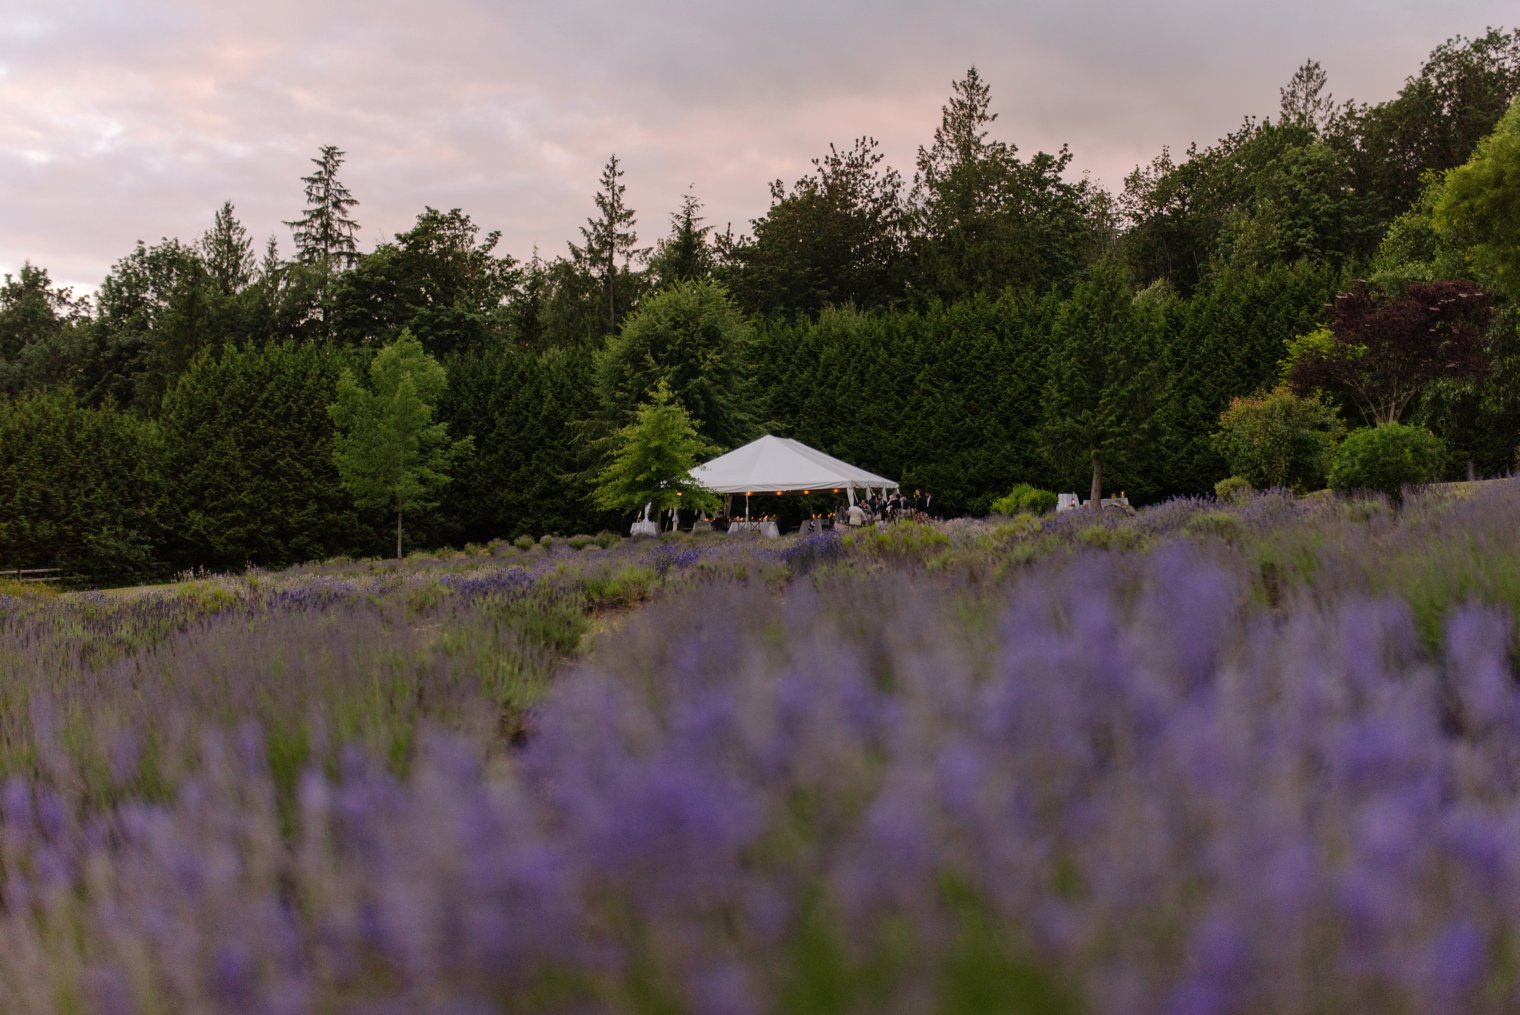 vancouver lavender farm wedding venue